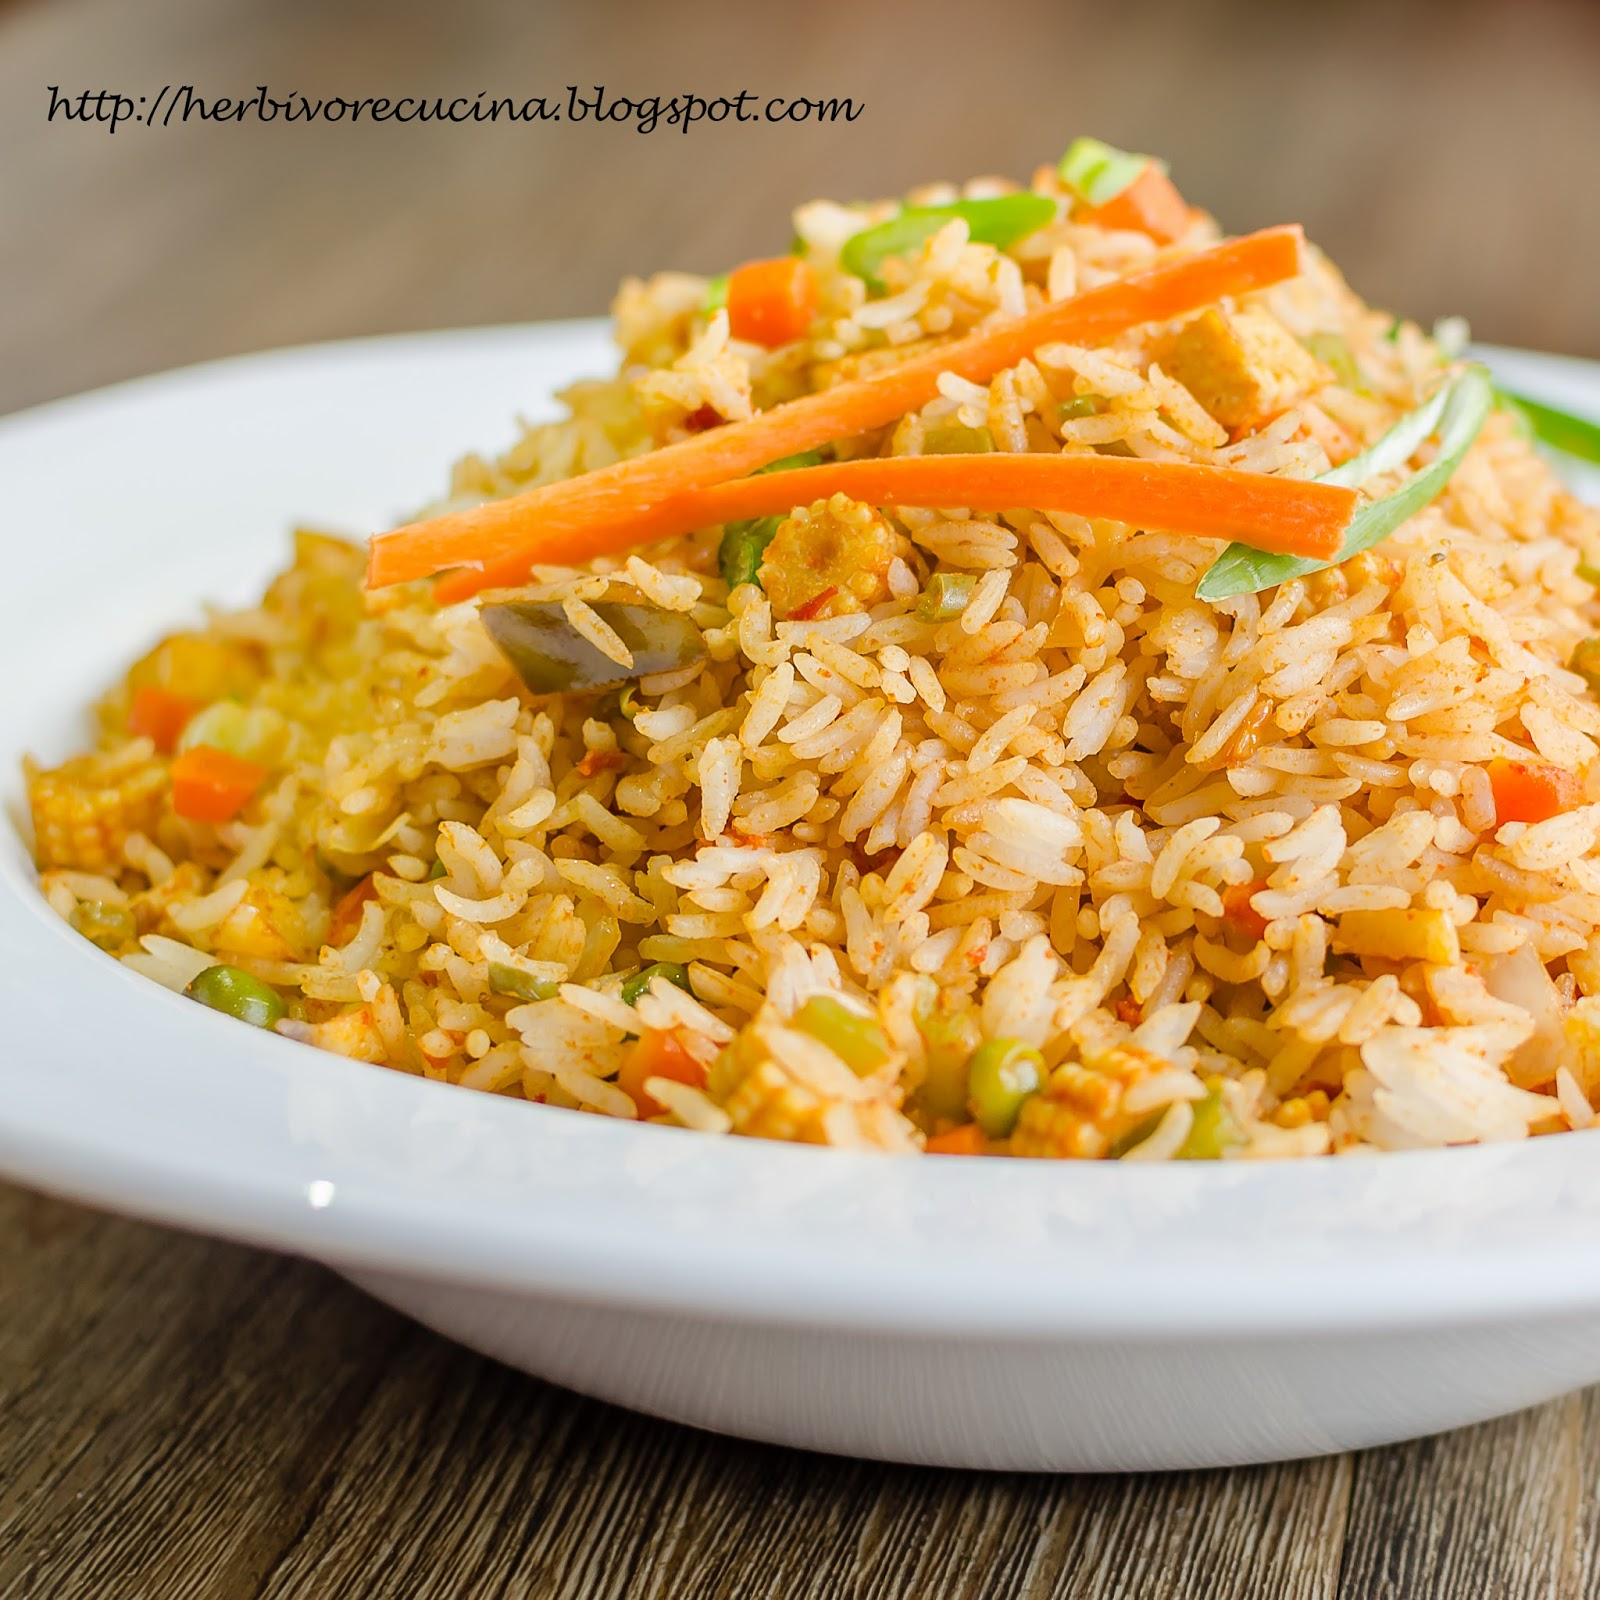 Herbivore Cucina Spicy Basil Fried Rice